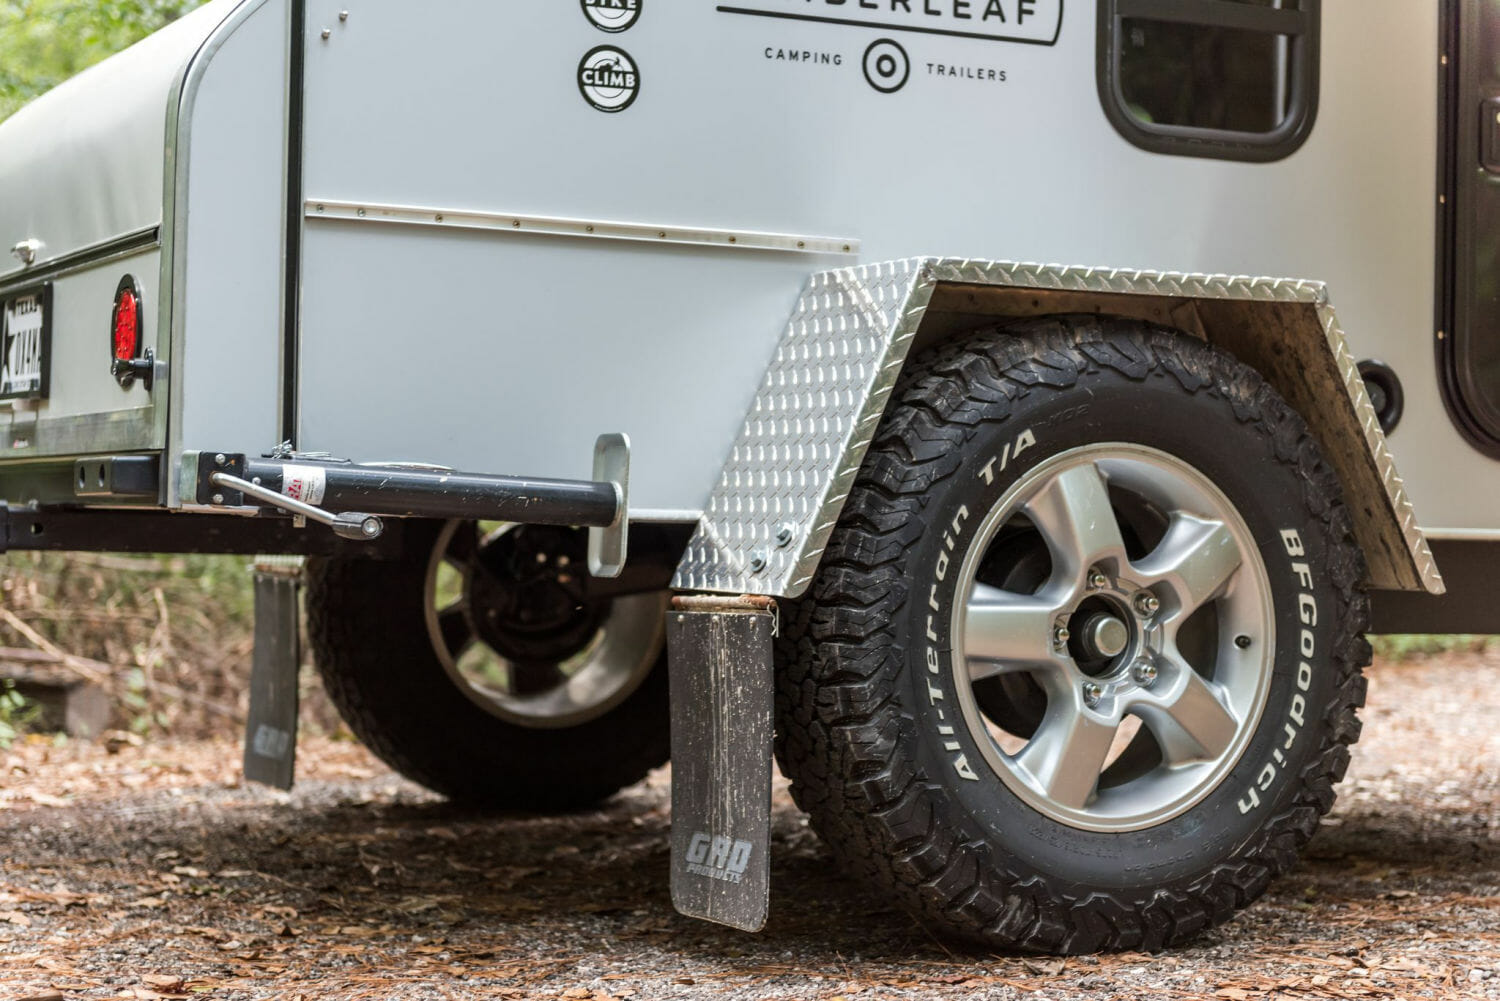 Overland Camping Trailer   Classic Teardrop Trailer by Timberleaf